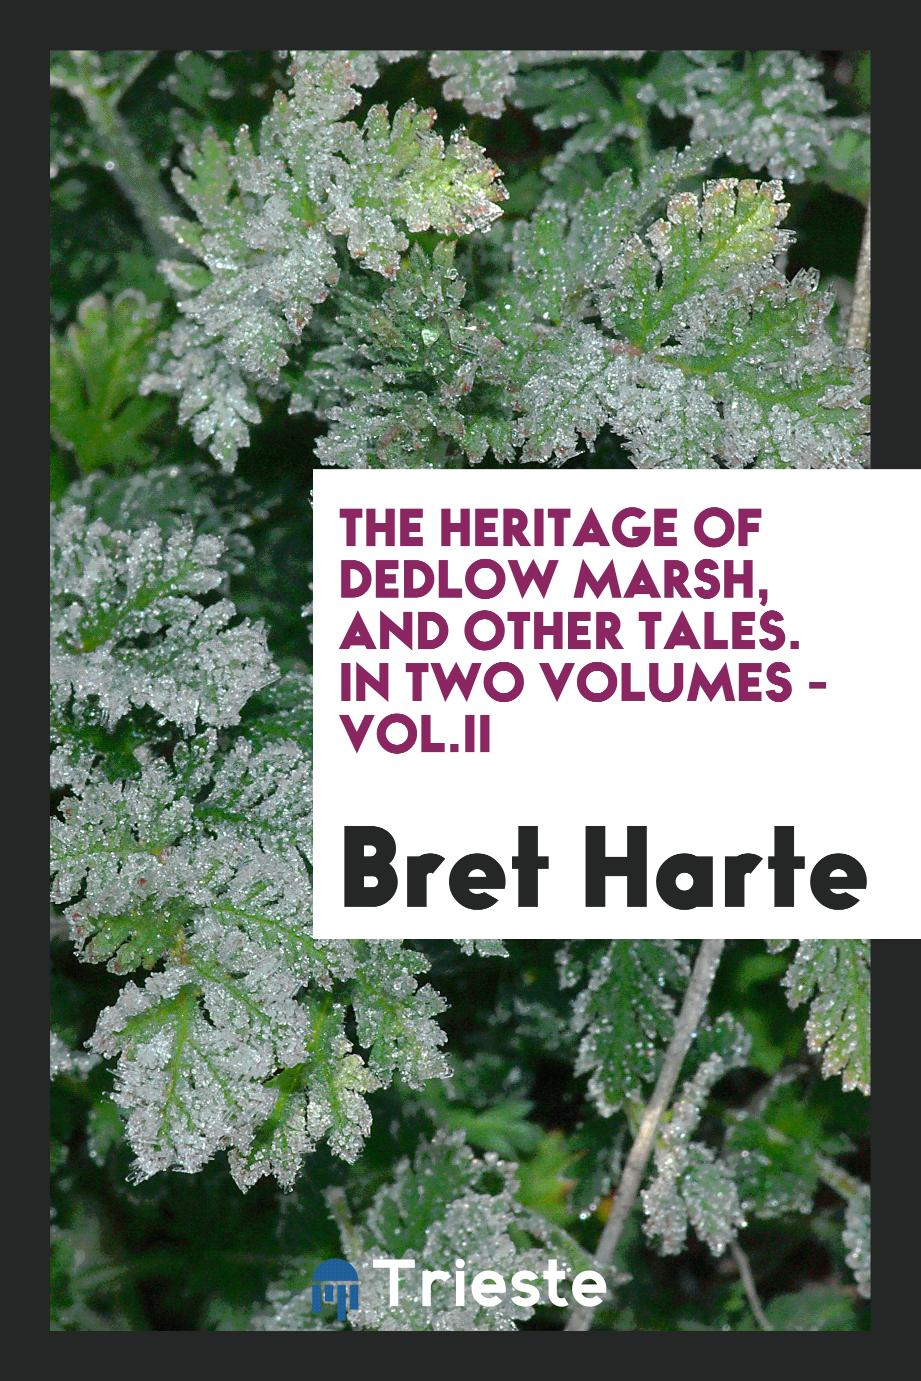 Bret Harte - The heritage of Dedlow Marsh, and other tales. In two volumes - vol.II